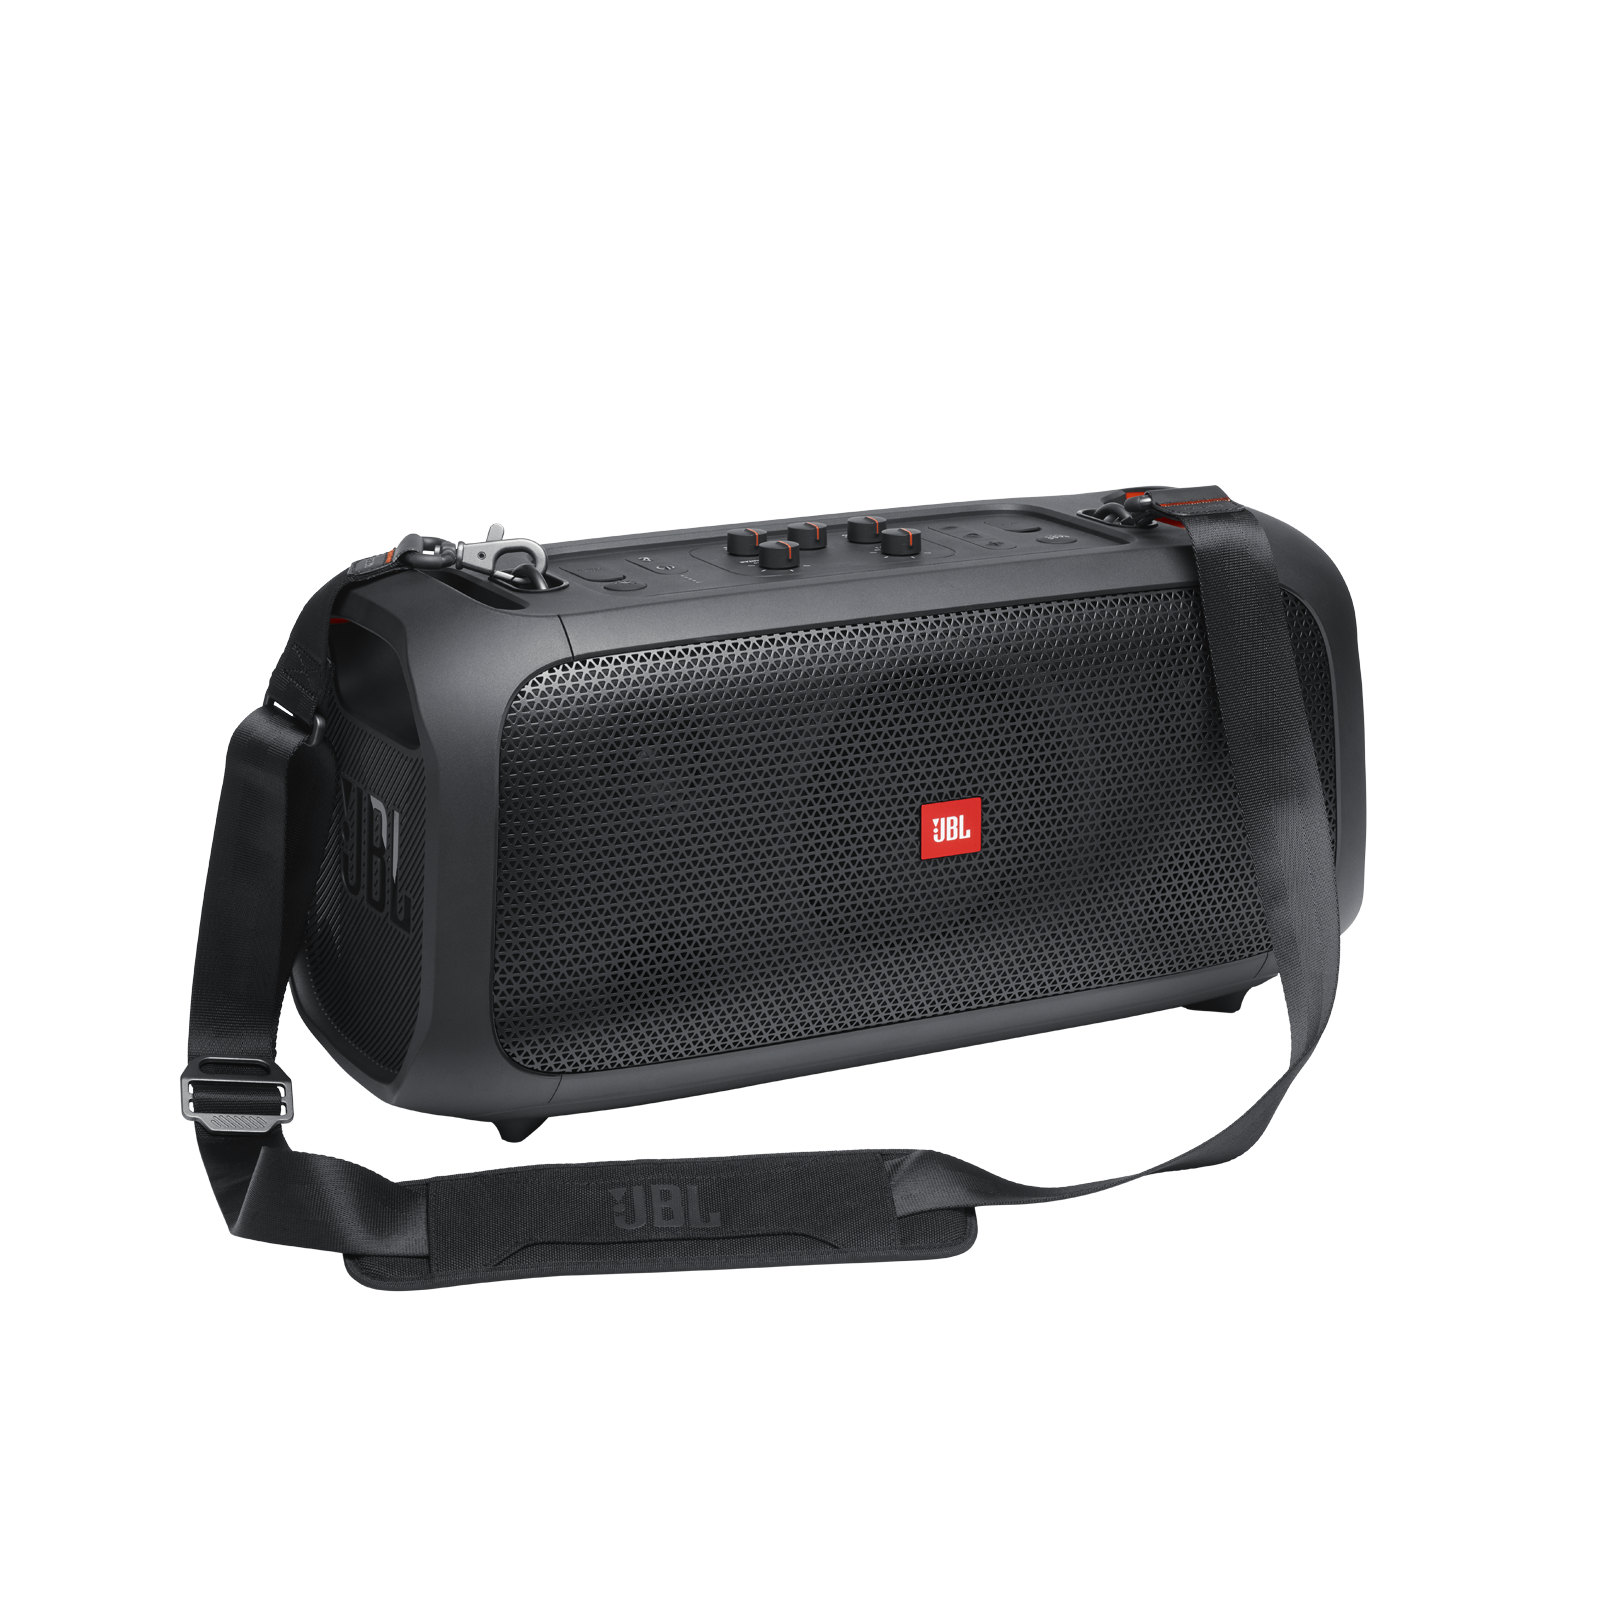 JBL PartyBox On-The-Go - Black - Portable party speaker with built-in lights and wireless mic - Detailshot 7